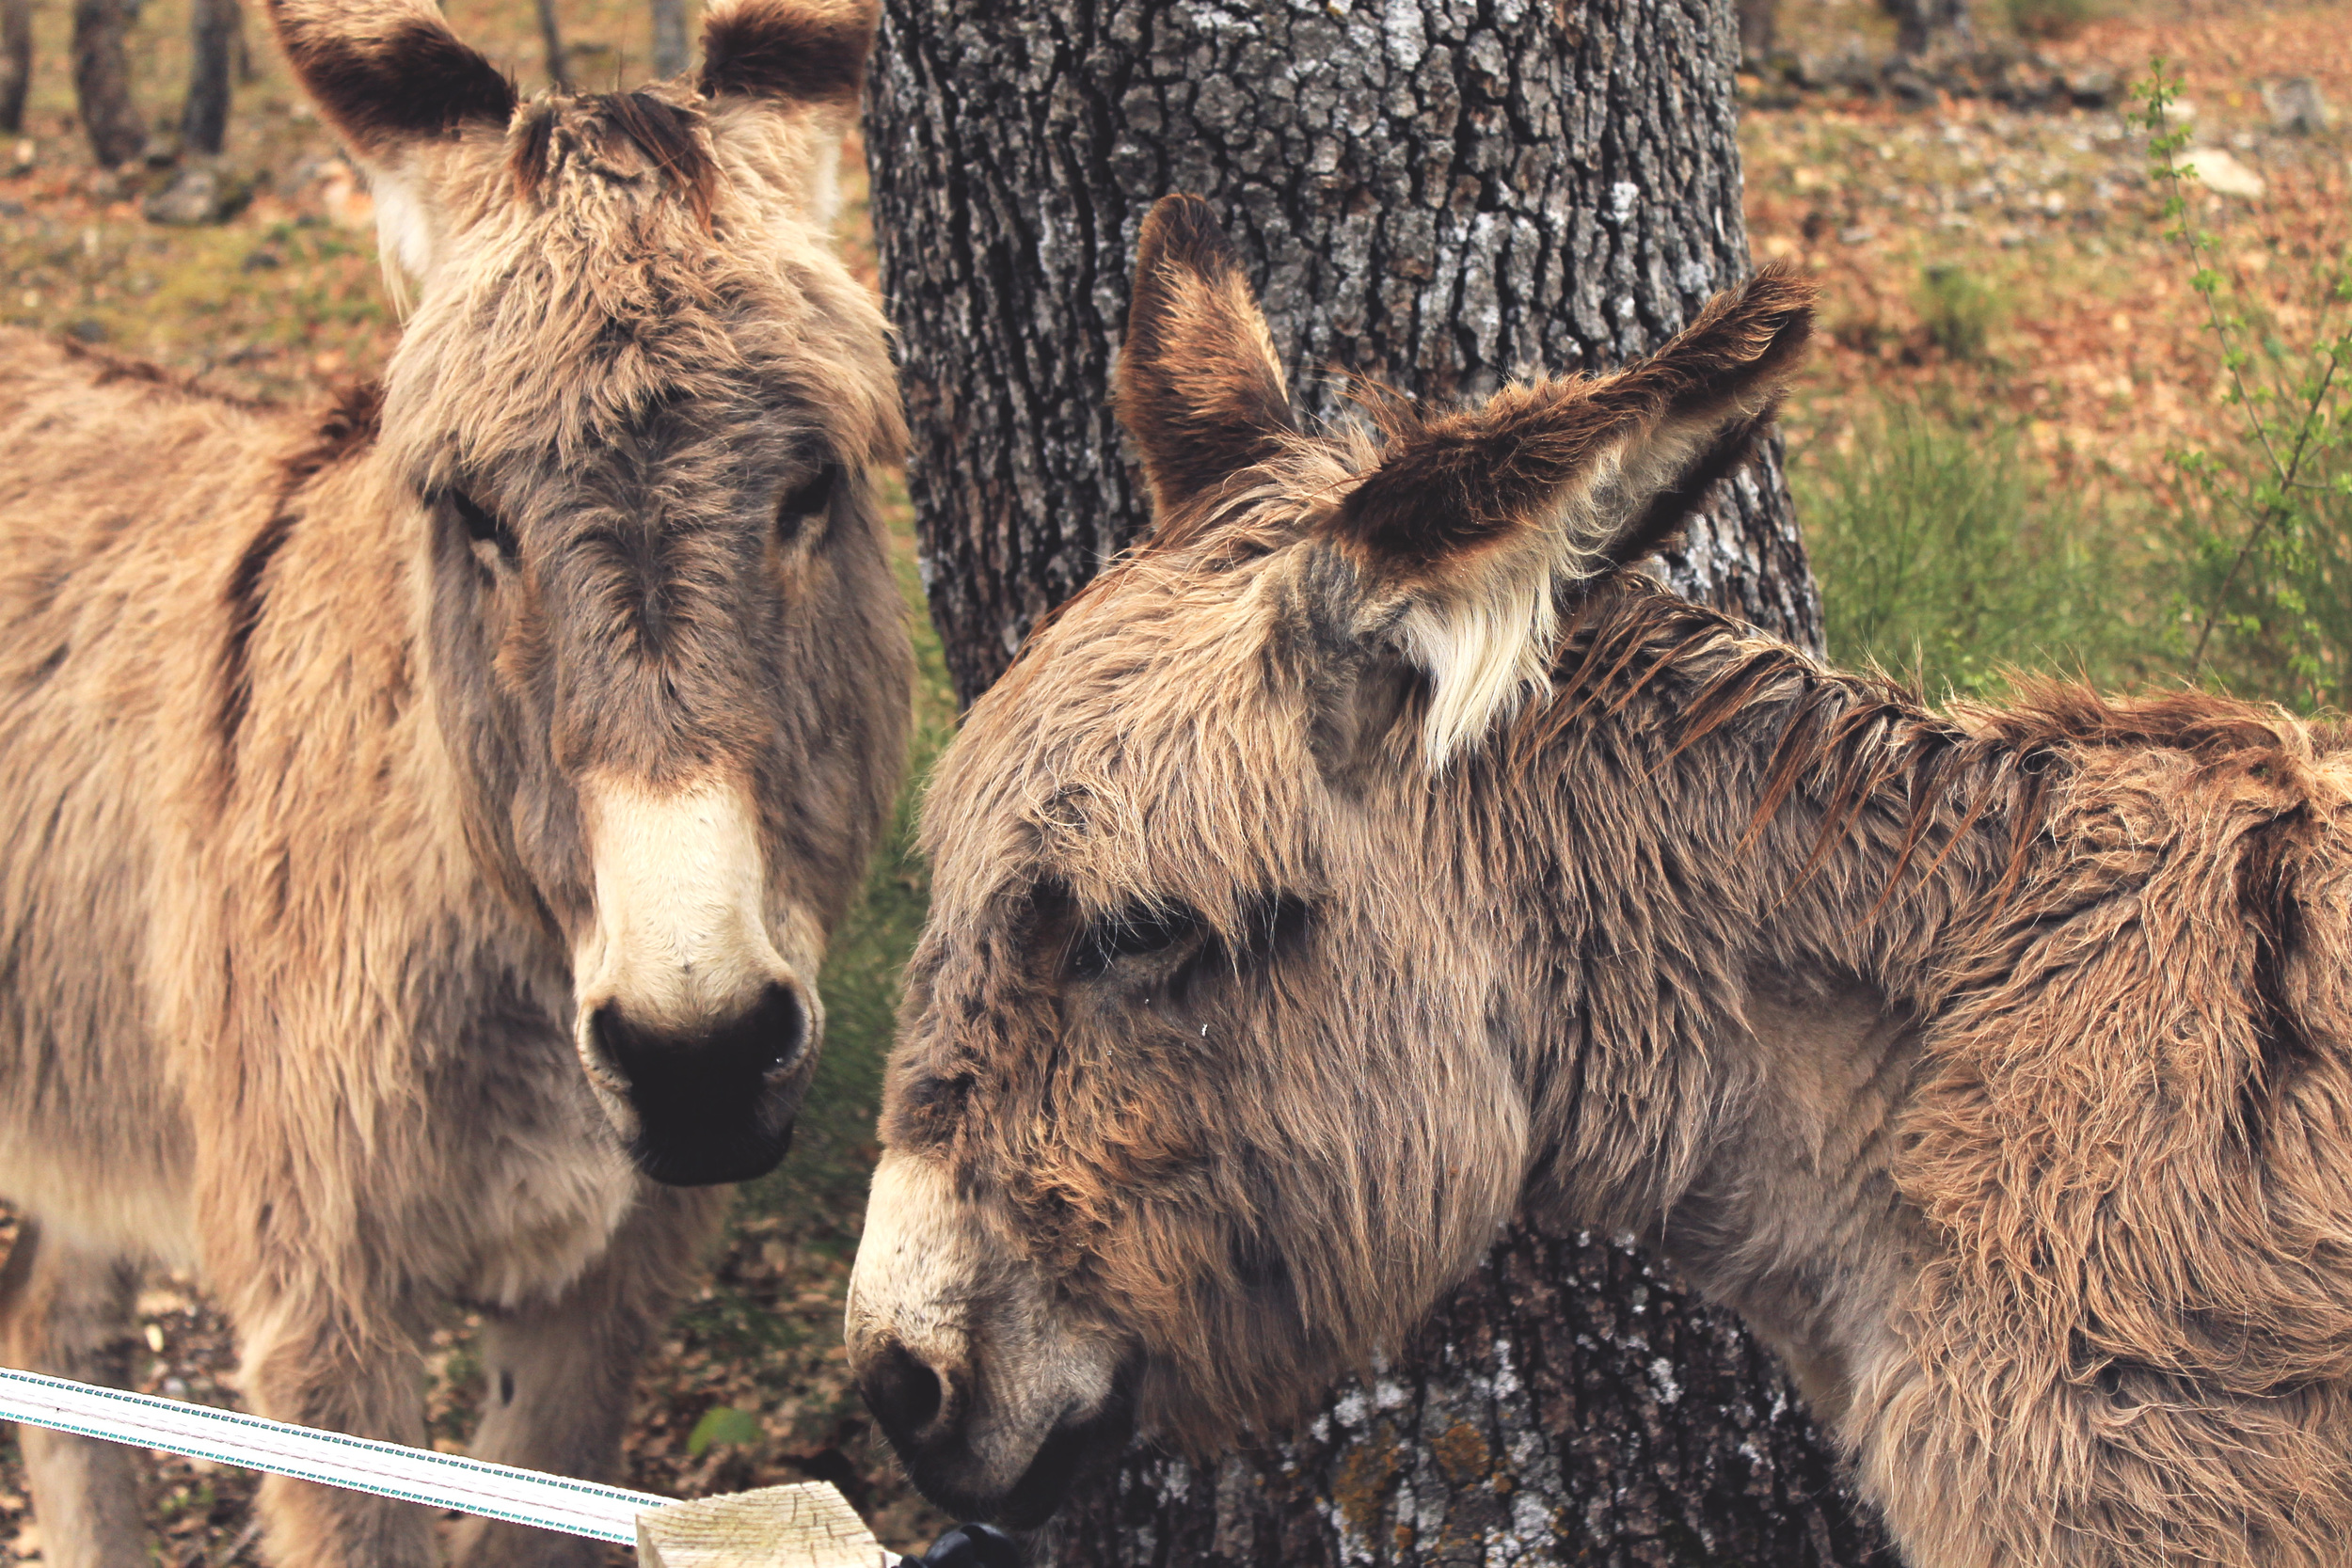 donkeys shaggy aw so cute french donks